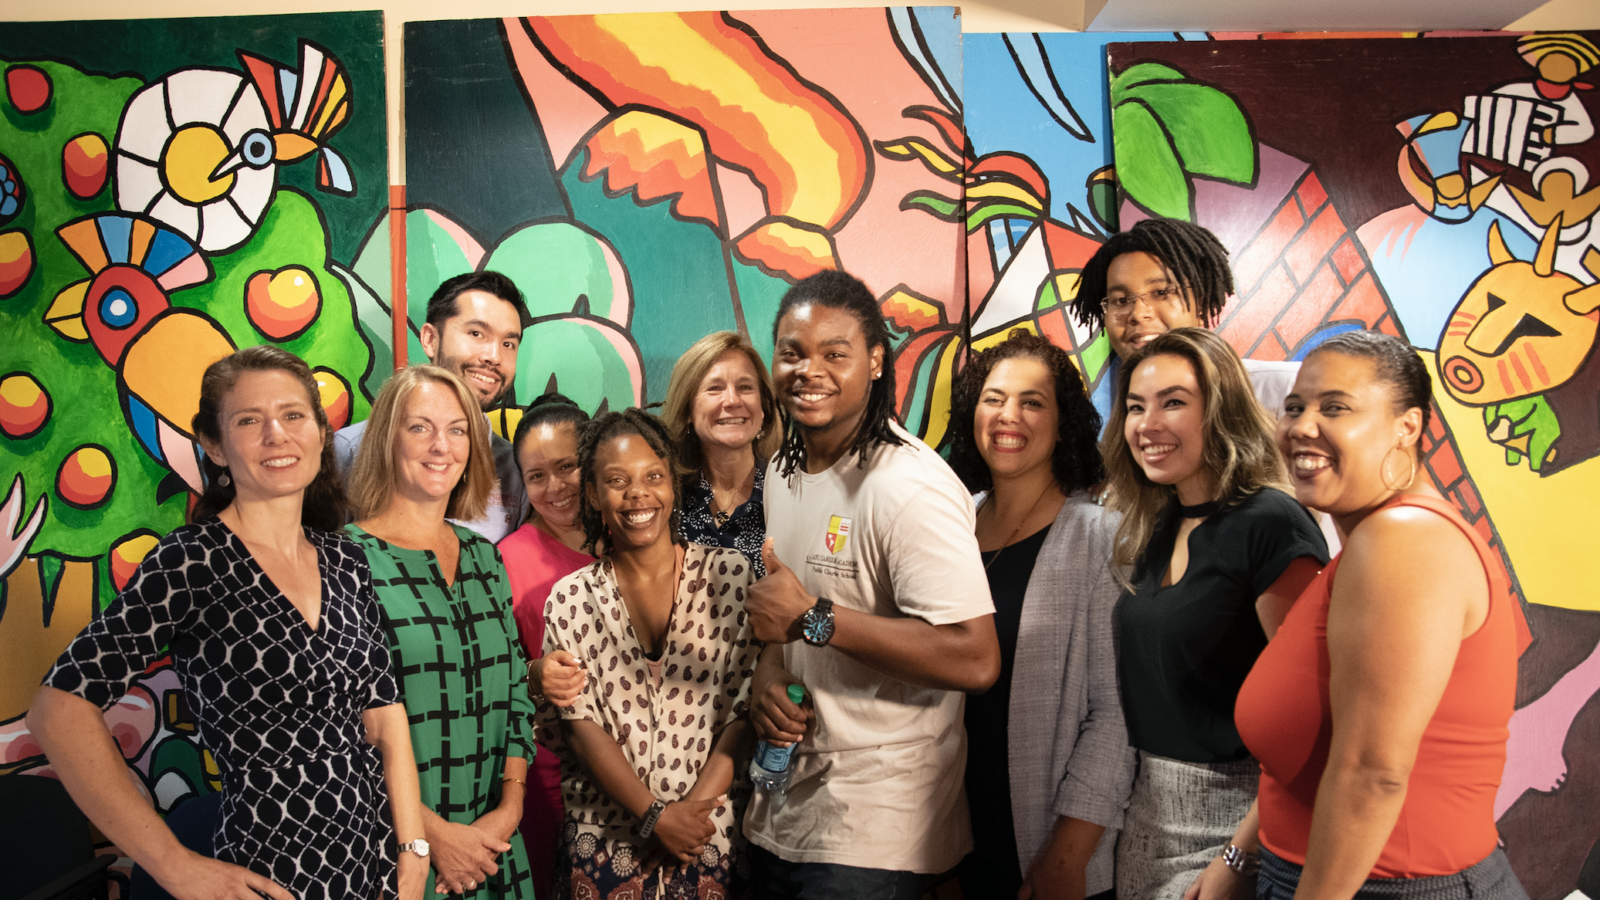 A group of people stand together smiling in front of a colorful mural.